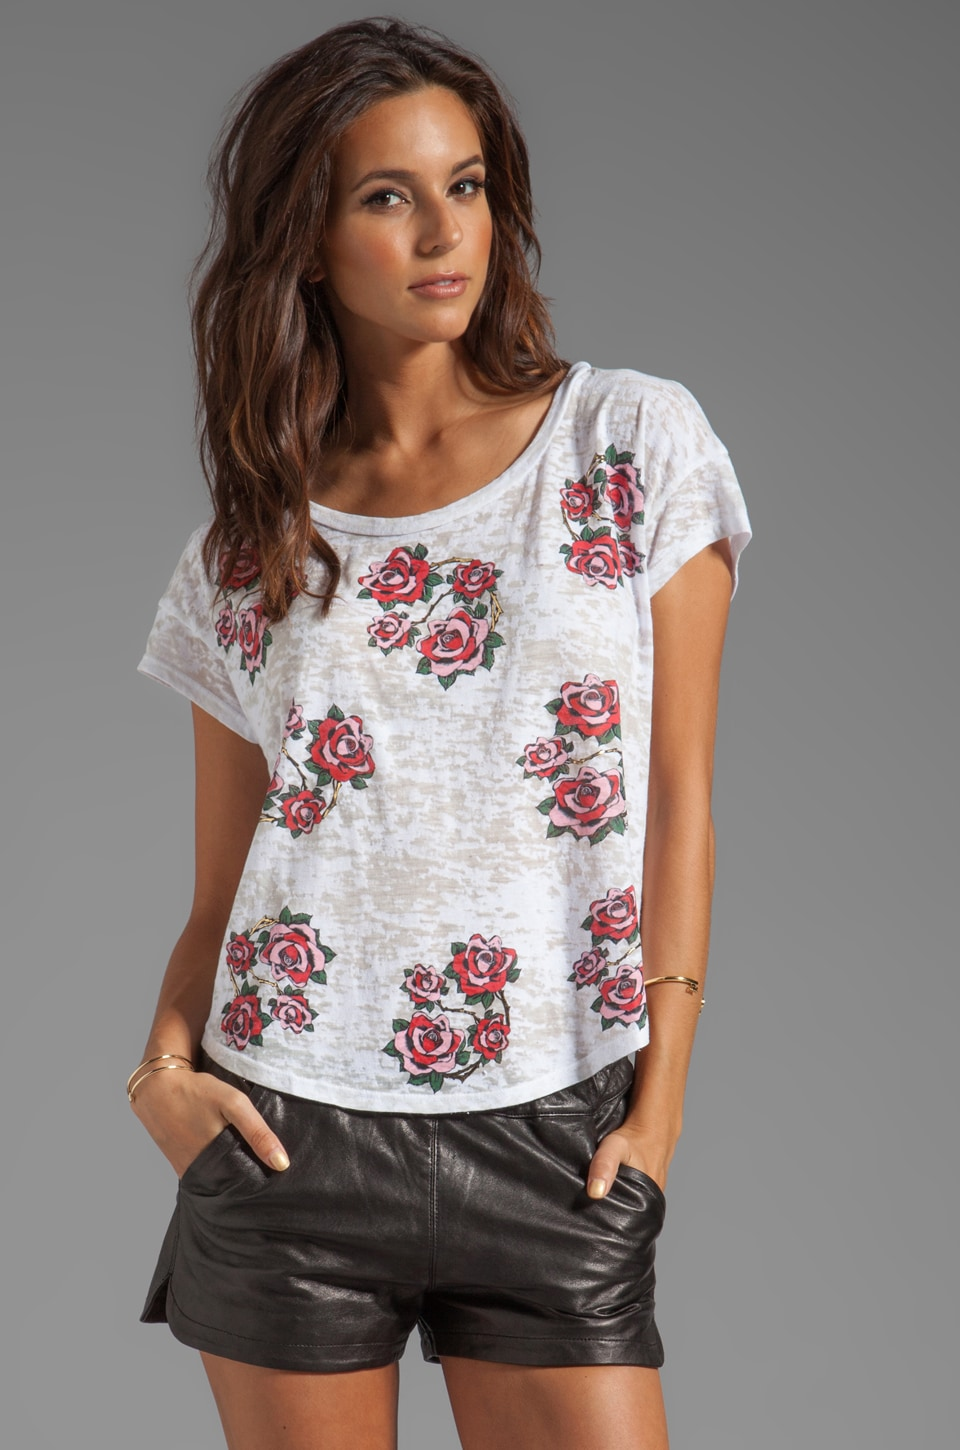 Lauren Moshi Audrey Mini Color Rose Vine Scoop Tee in White